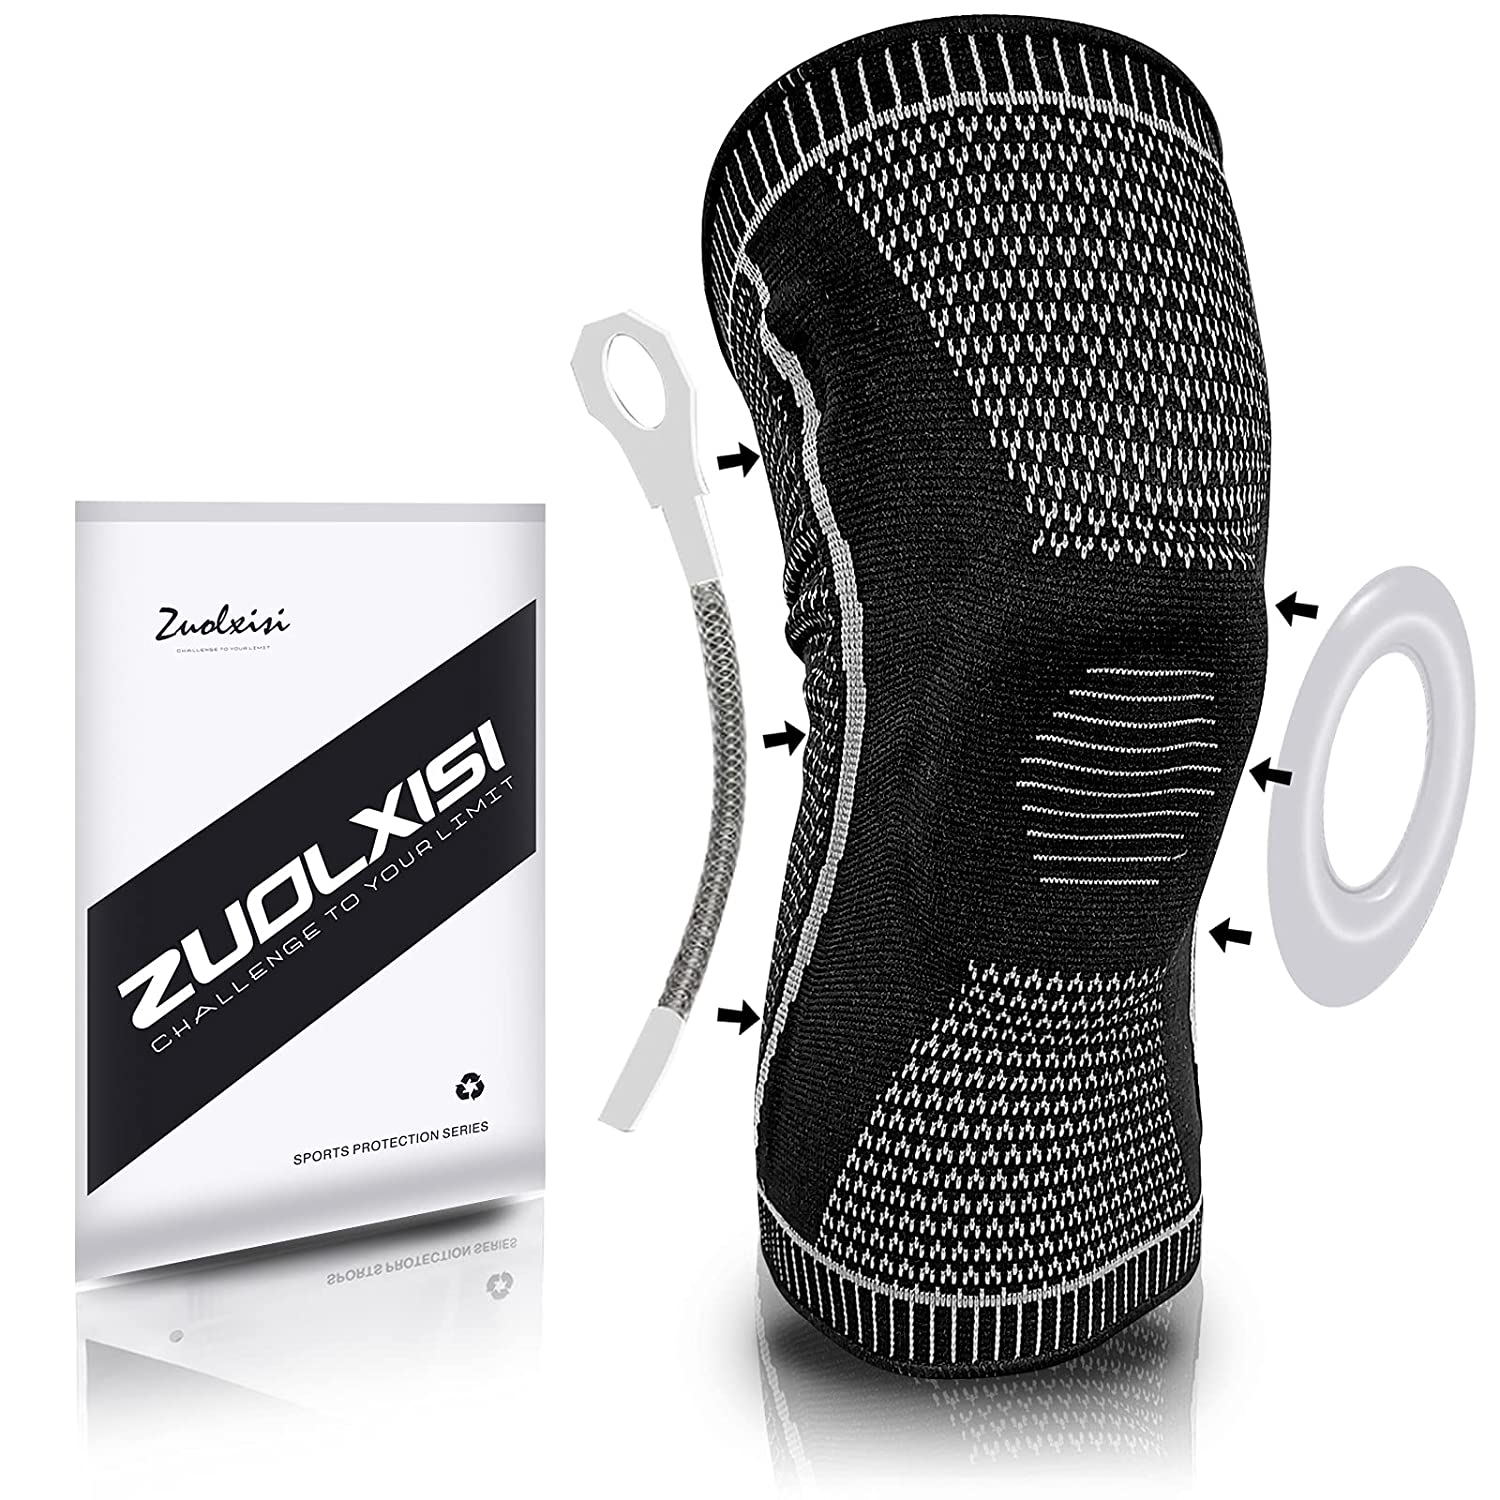 ZUOLXIS Kneepad knee braces Super Easy-to-use popular specialty store for pain men s is and women